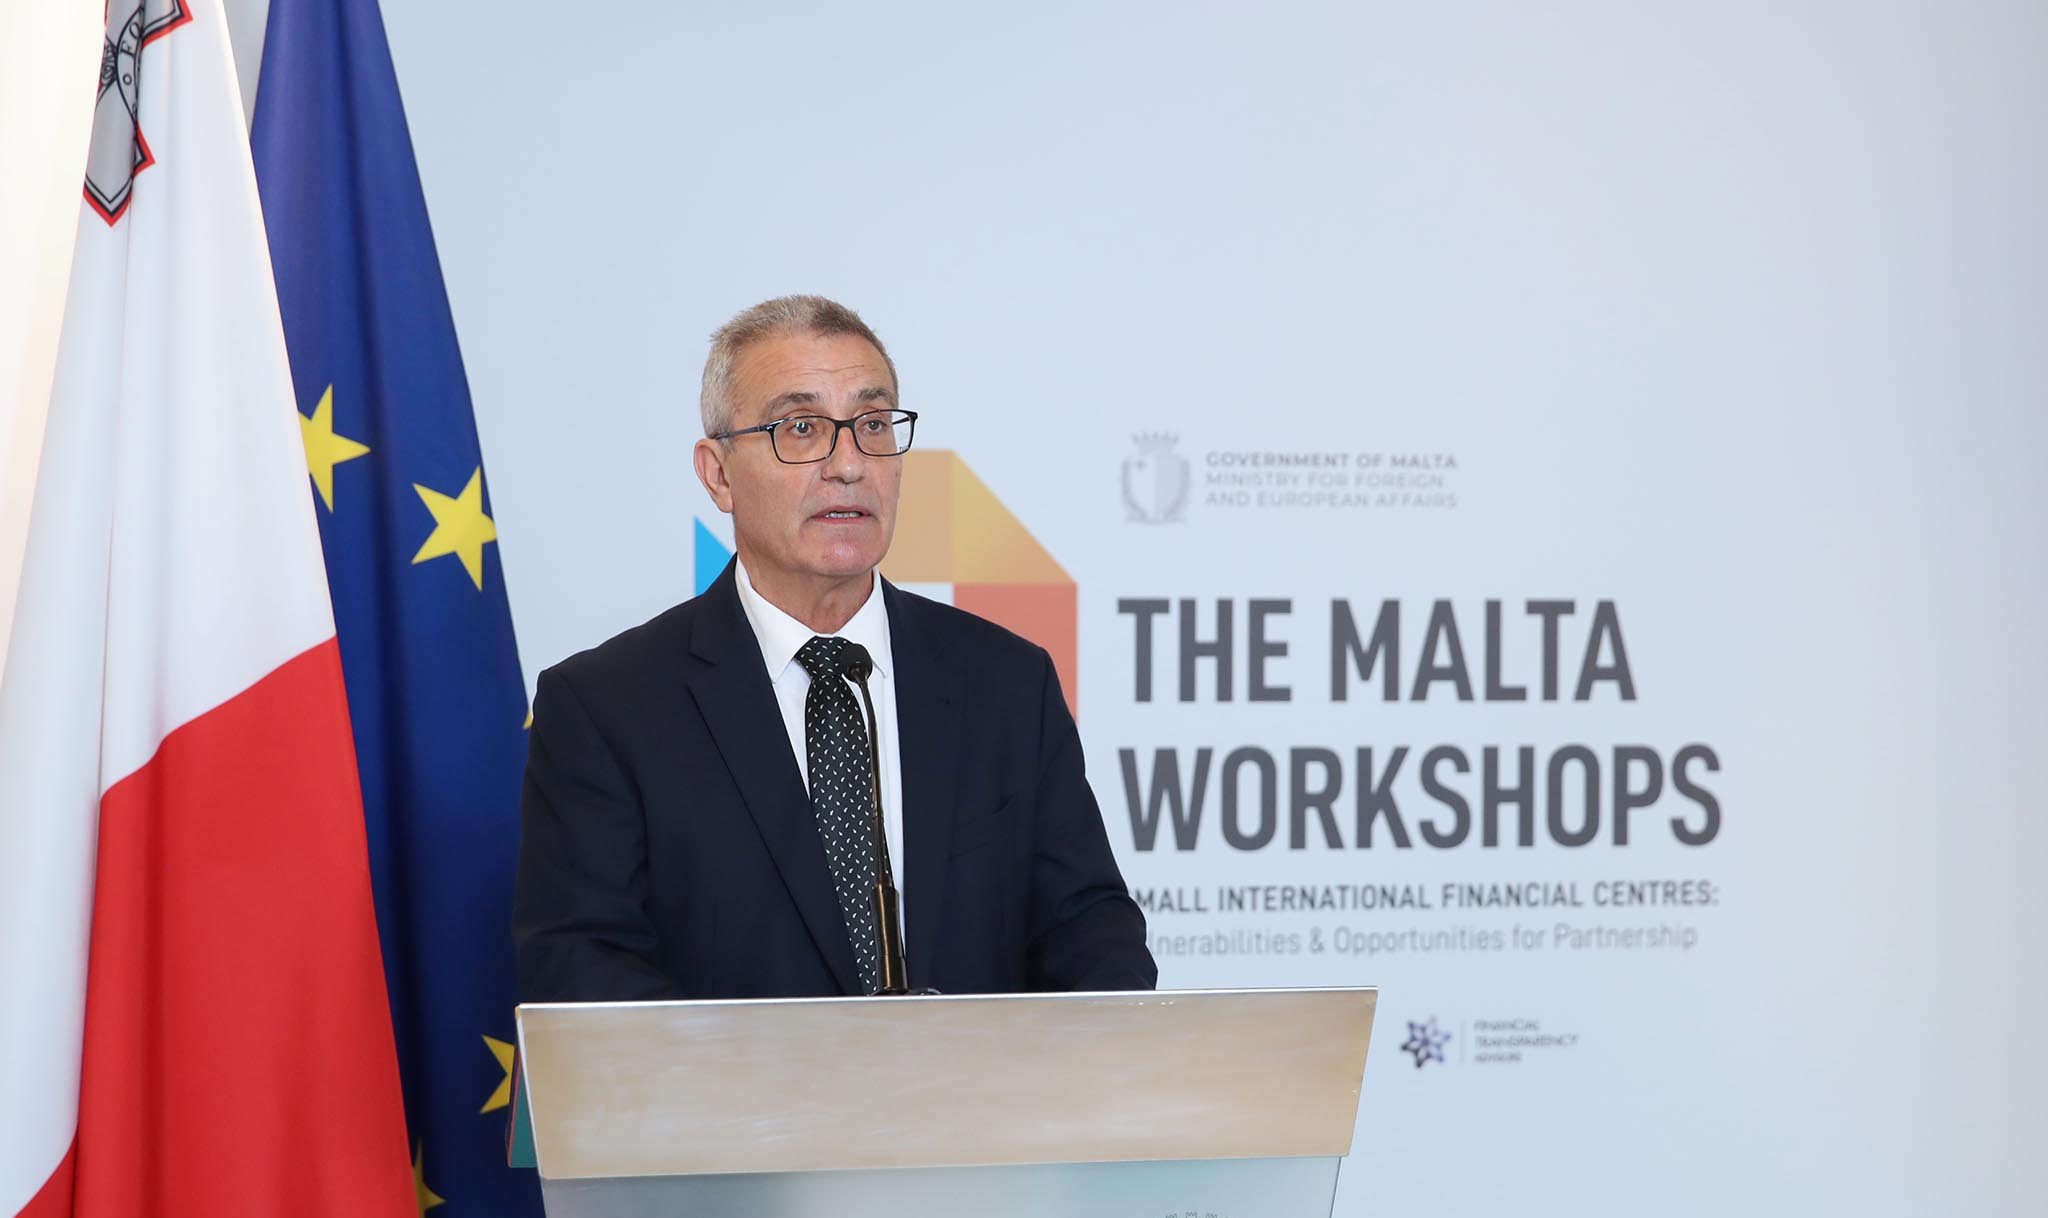 Malta launches global workshops for small countries on challenges in attracting foreign business